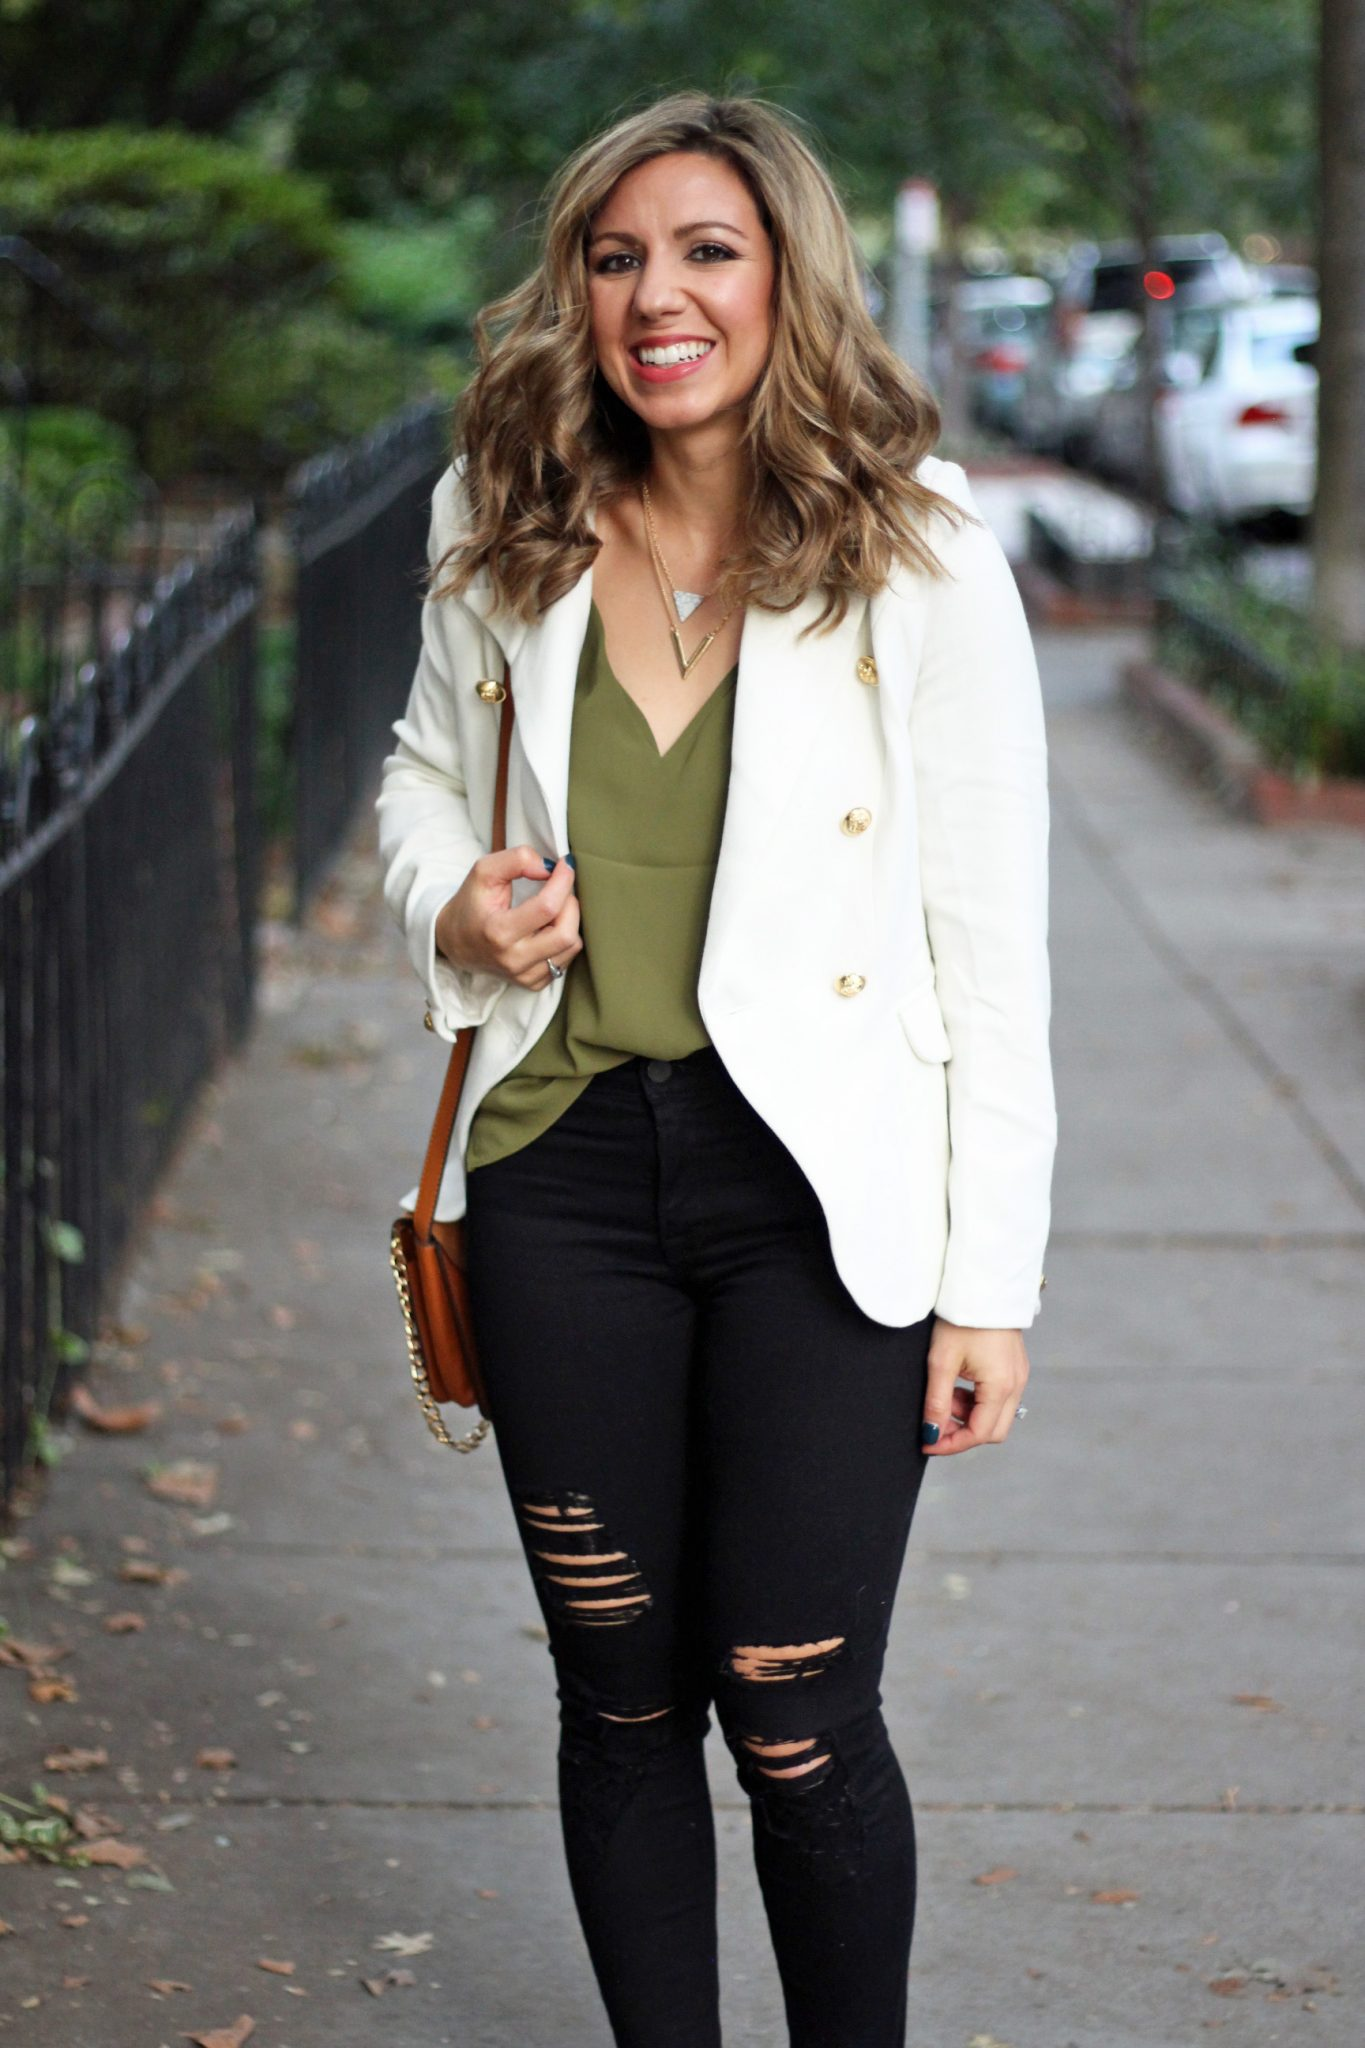 White Blazer for Date Night and Zaful Accessories